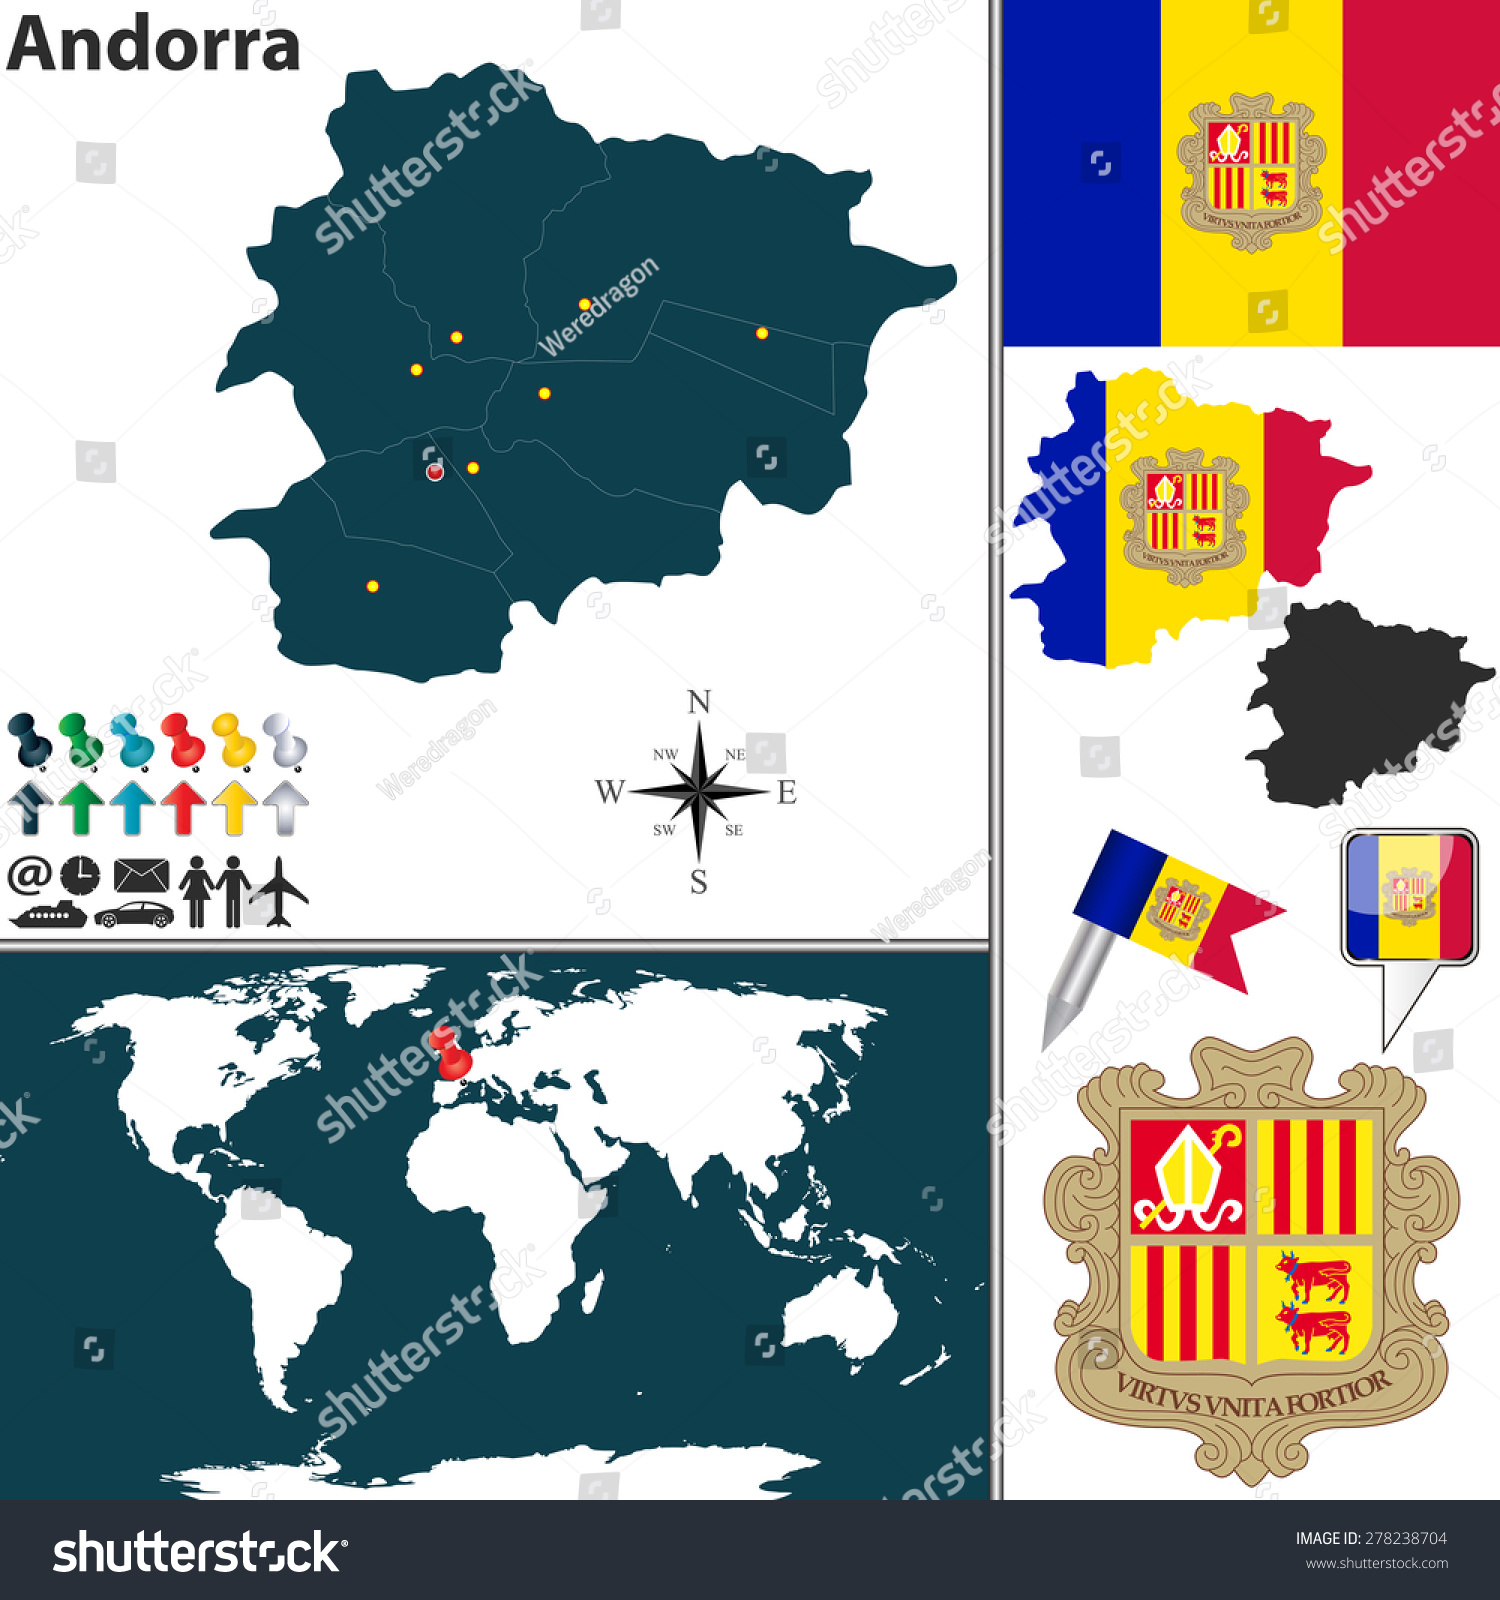 Vector map andorra regions coat arms vectores en stock 278238704 vector map of andorra with regions coat of arms and location on world map gumiabroncs